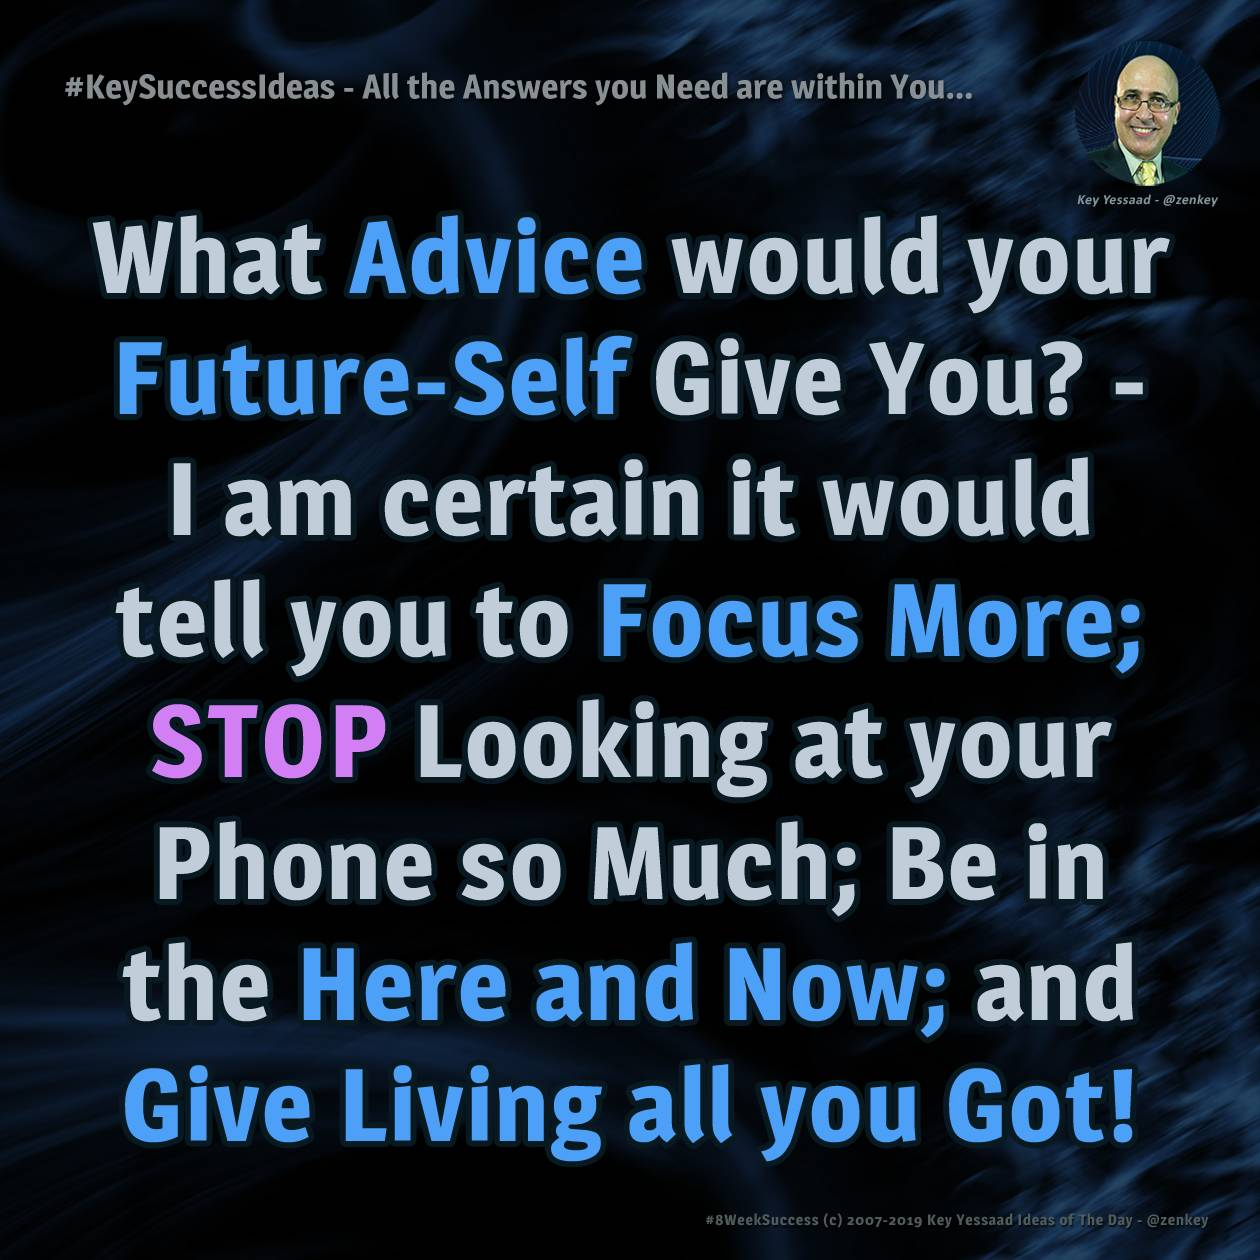 #KeySuccessIdeas - All the Answers you Need are within You...